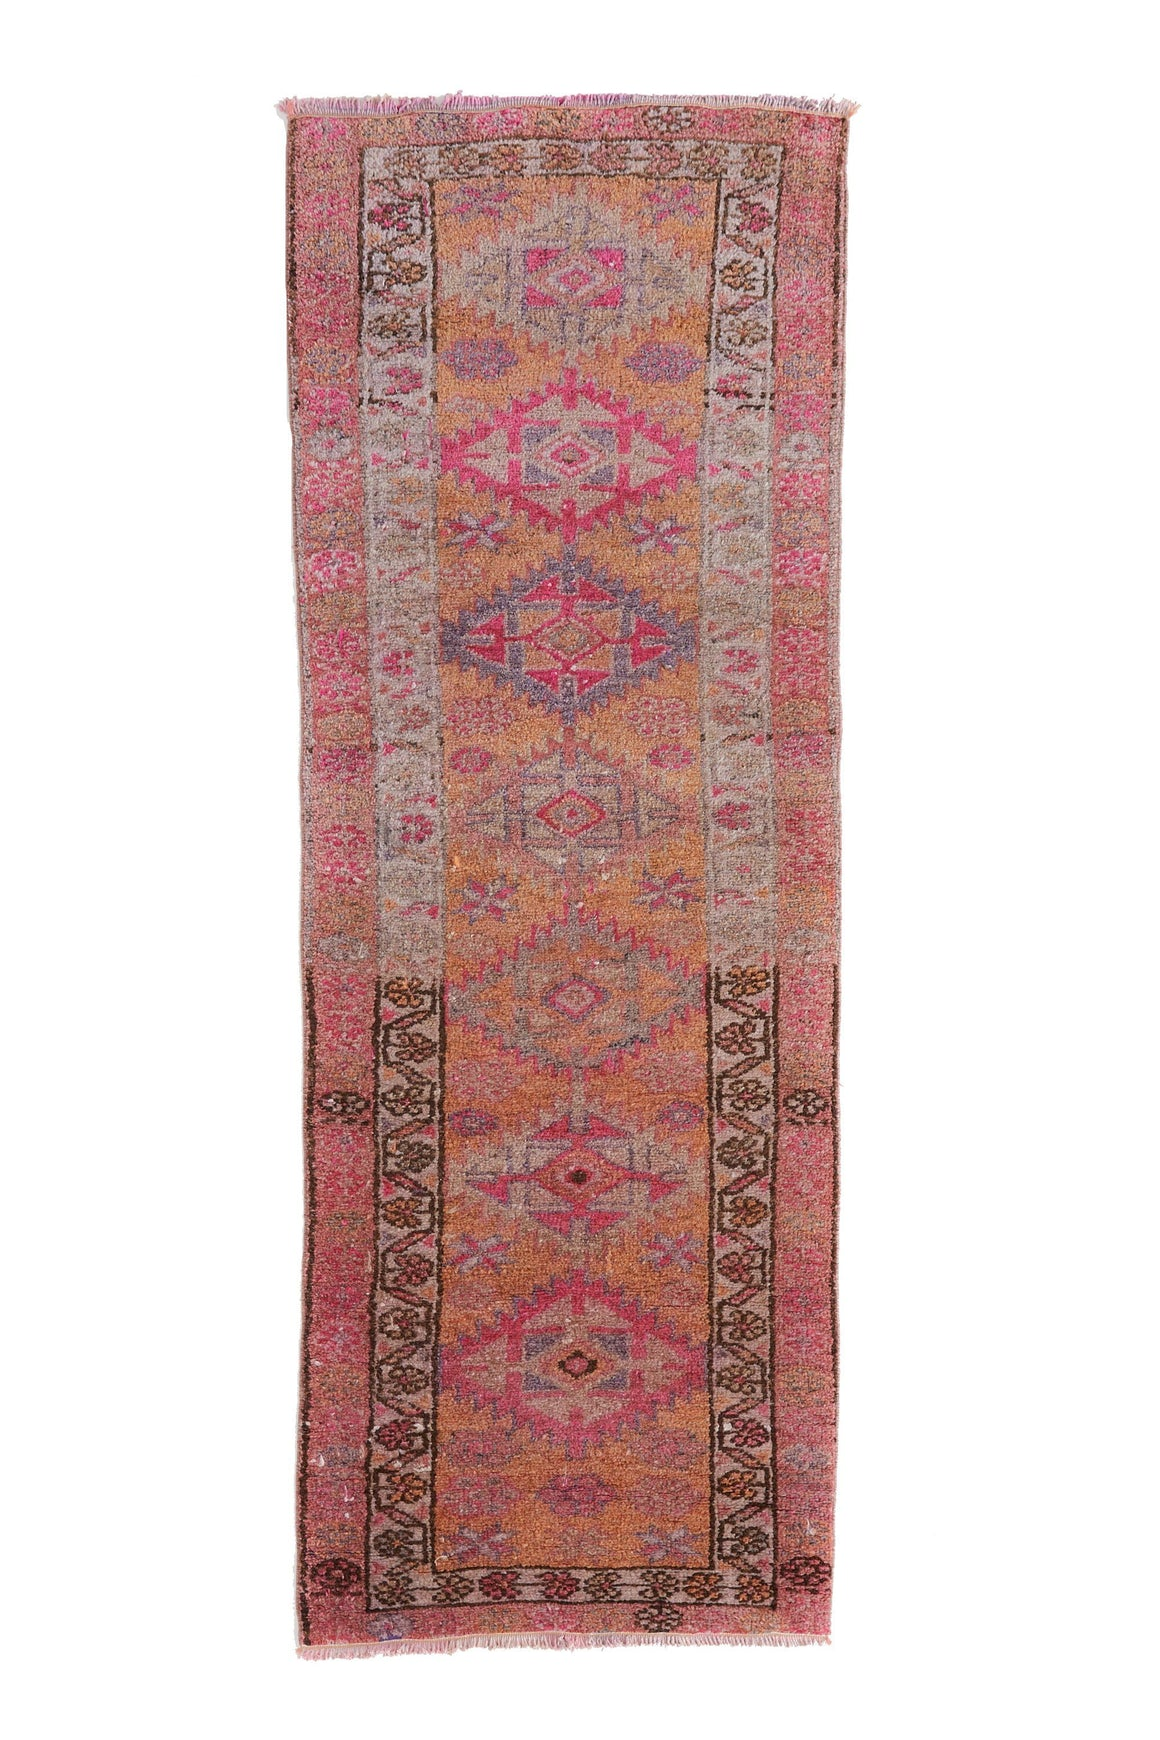 "'Grace' Turkish Vintage Runner - 2'9"" x 7'8"" - Canary Lane - Curated Textiles"